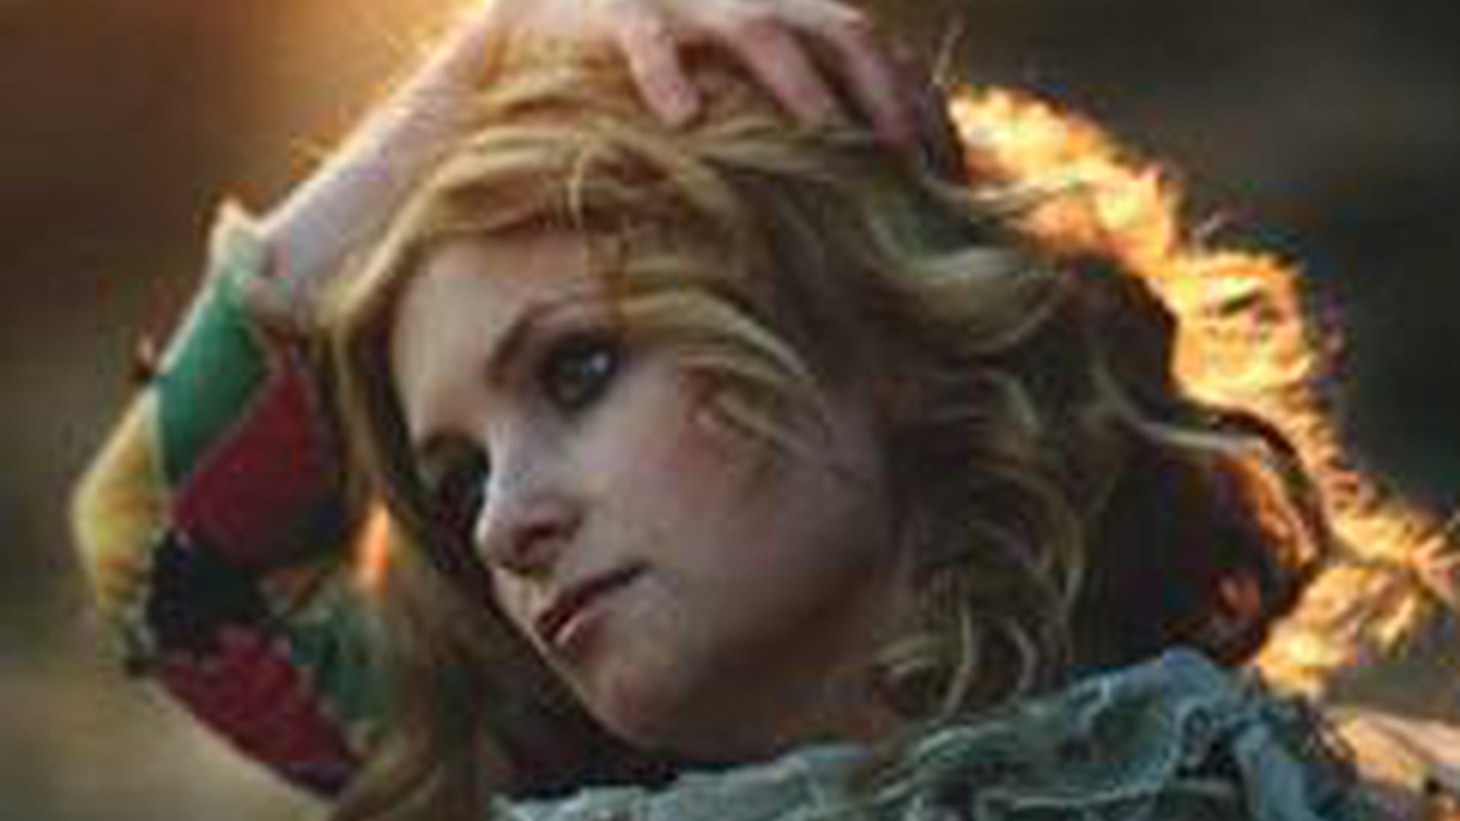 Goldfrapp return with new songs on Morning Becomes Eclectic at 11:15am.